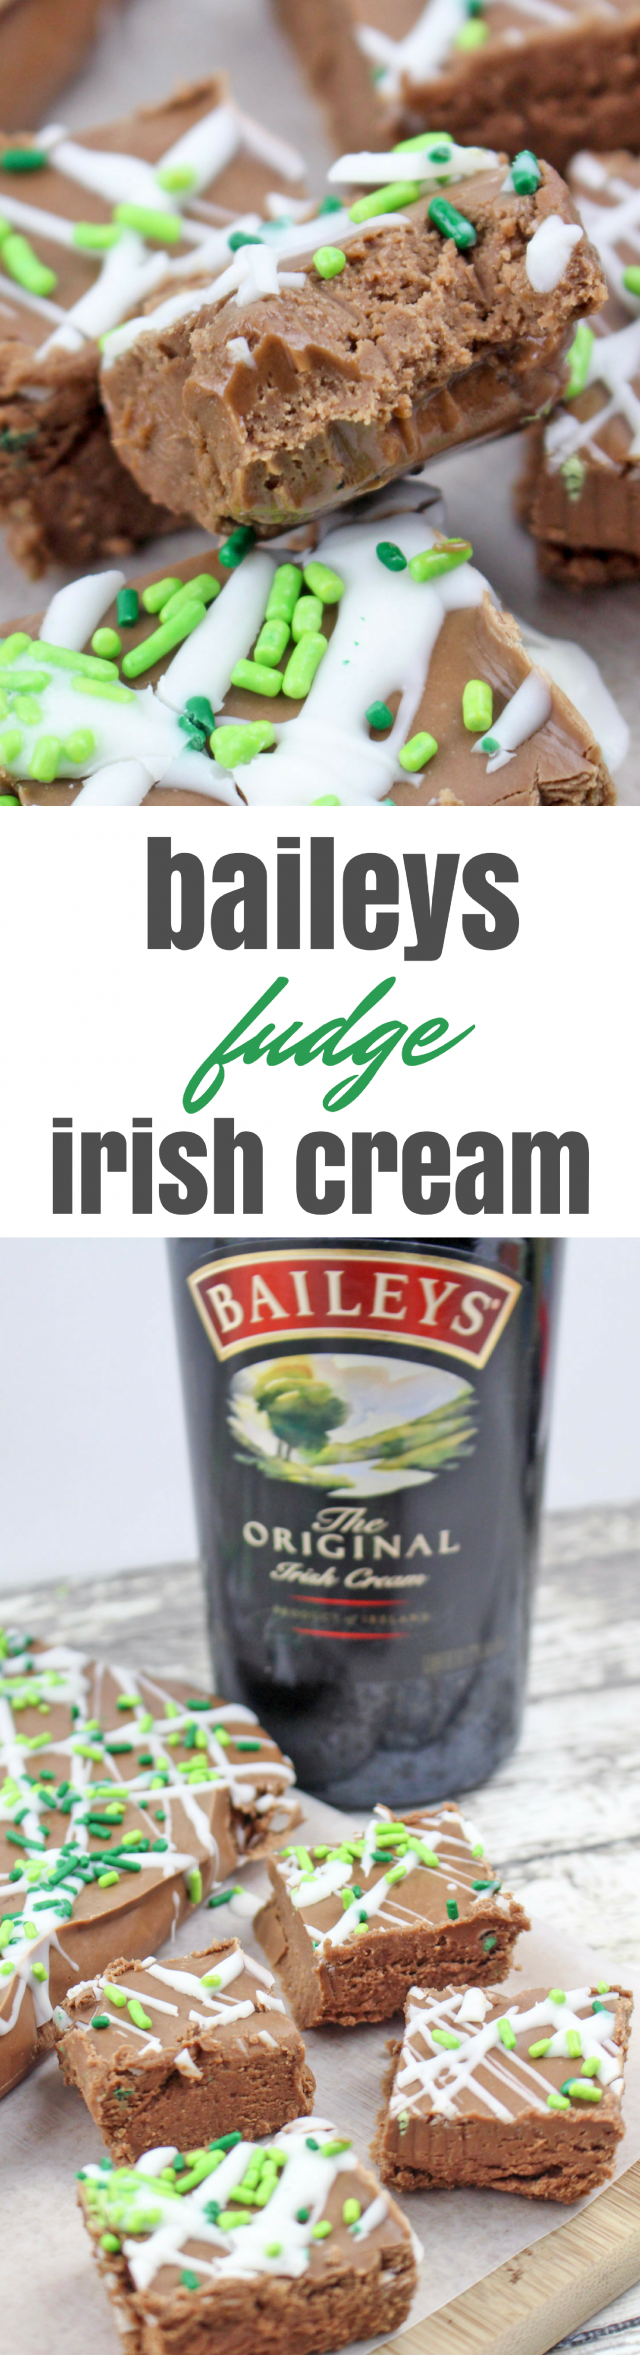 Green Baileys Irish Cream Chocolate Fudge Recipe. Chocolate seems appropriate for any St. Patty's Day event or party, but fudge, in my opinion, sounds even better. How about a rich, decadent fudge with a hint of Baileys Irish Cream?